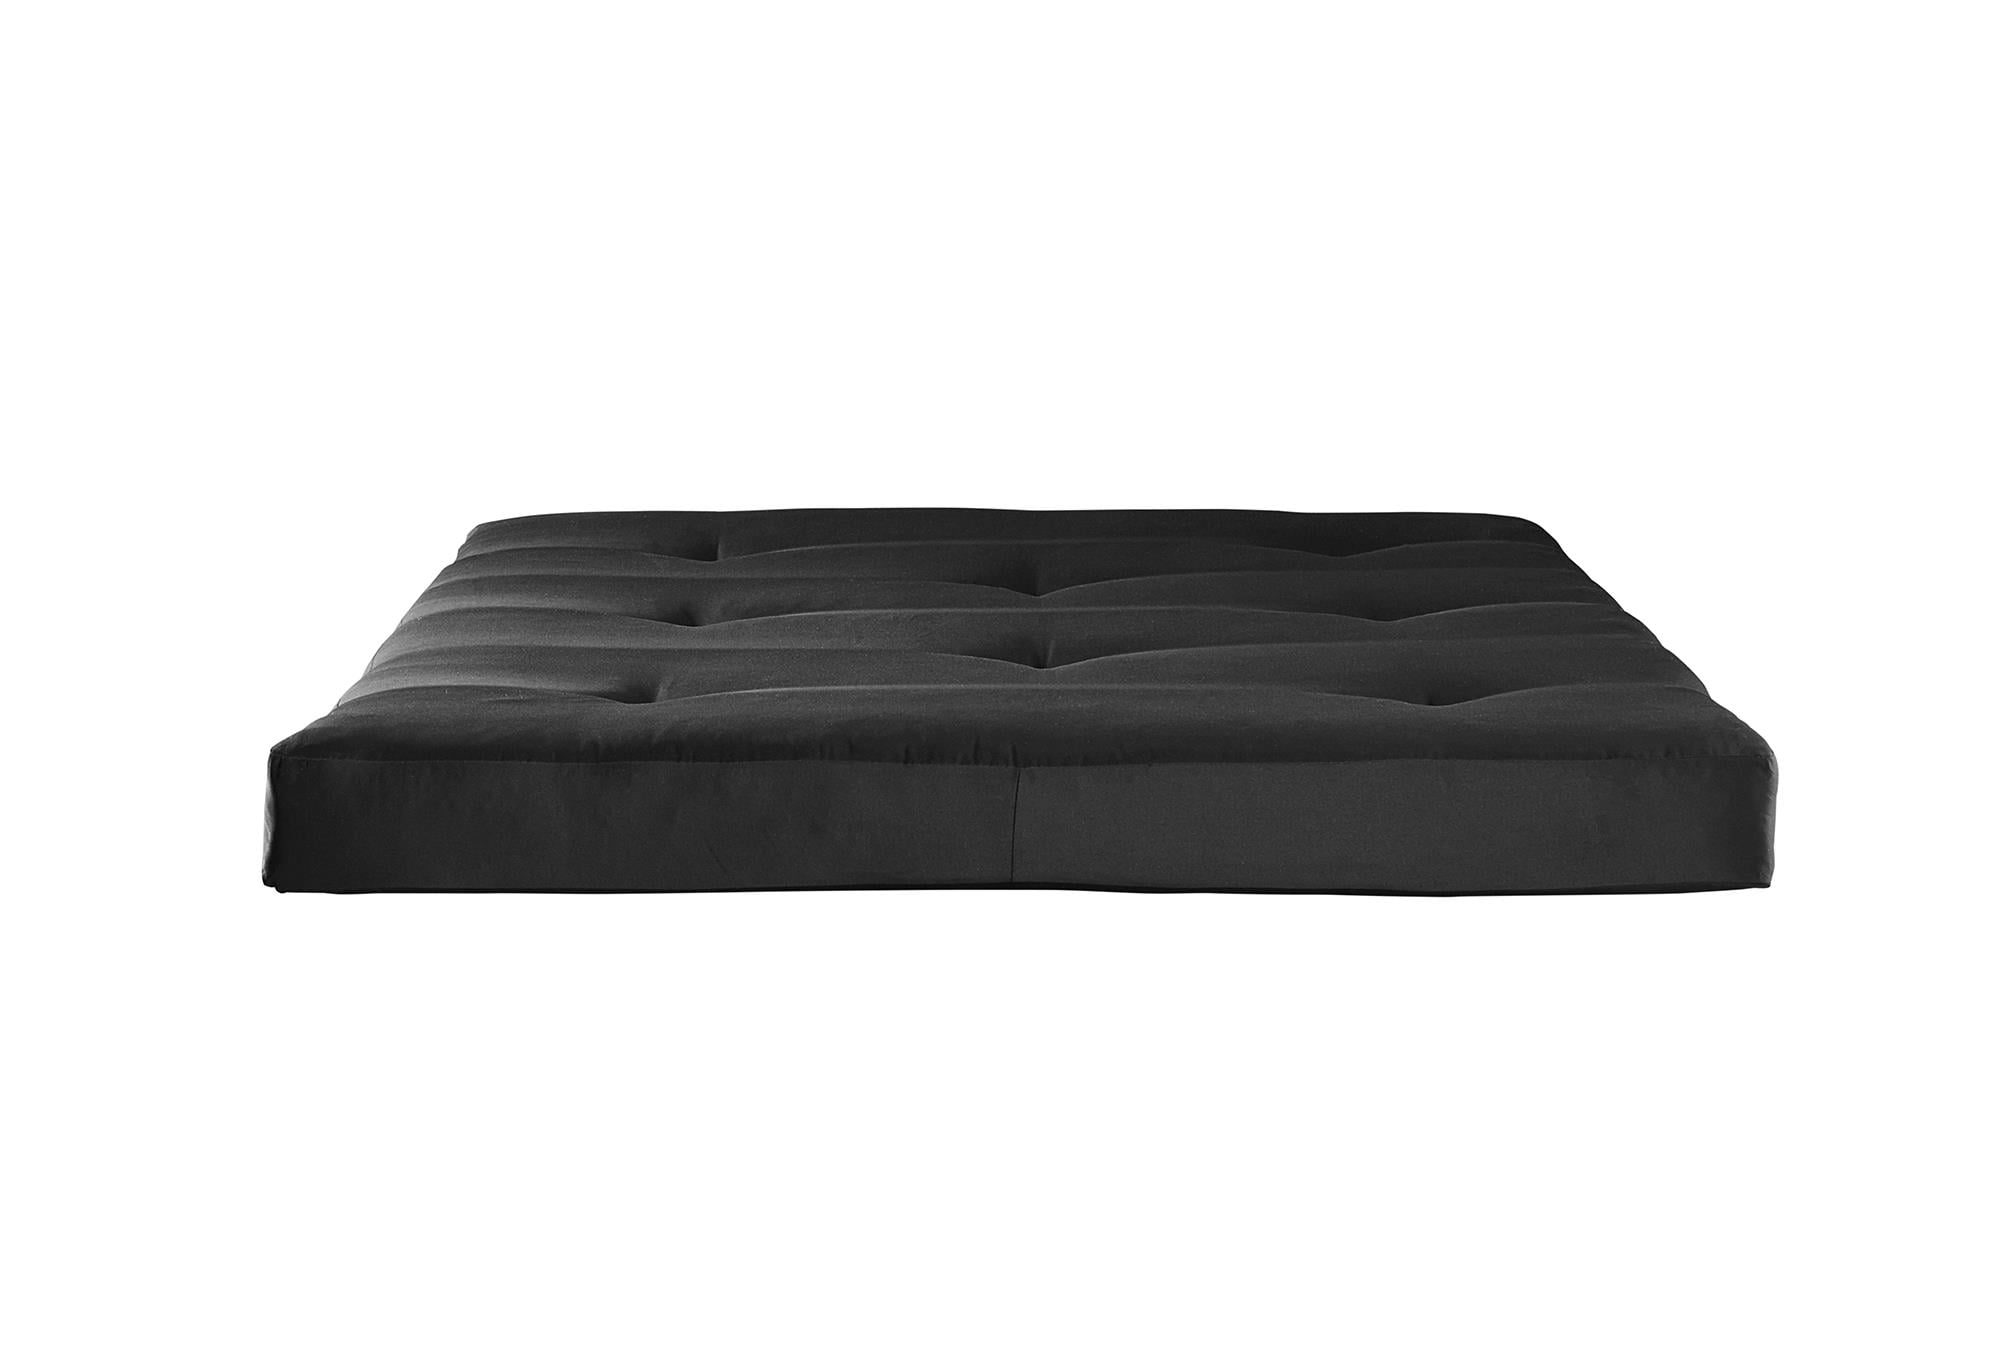 inch tufted futon com cover mainstays ip colors multiple walmart mattress